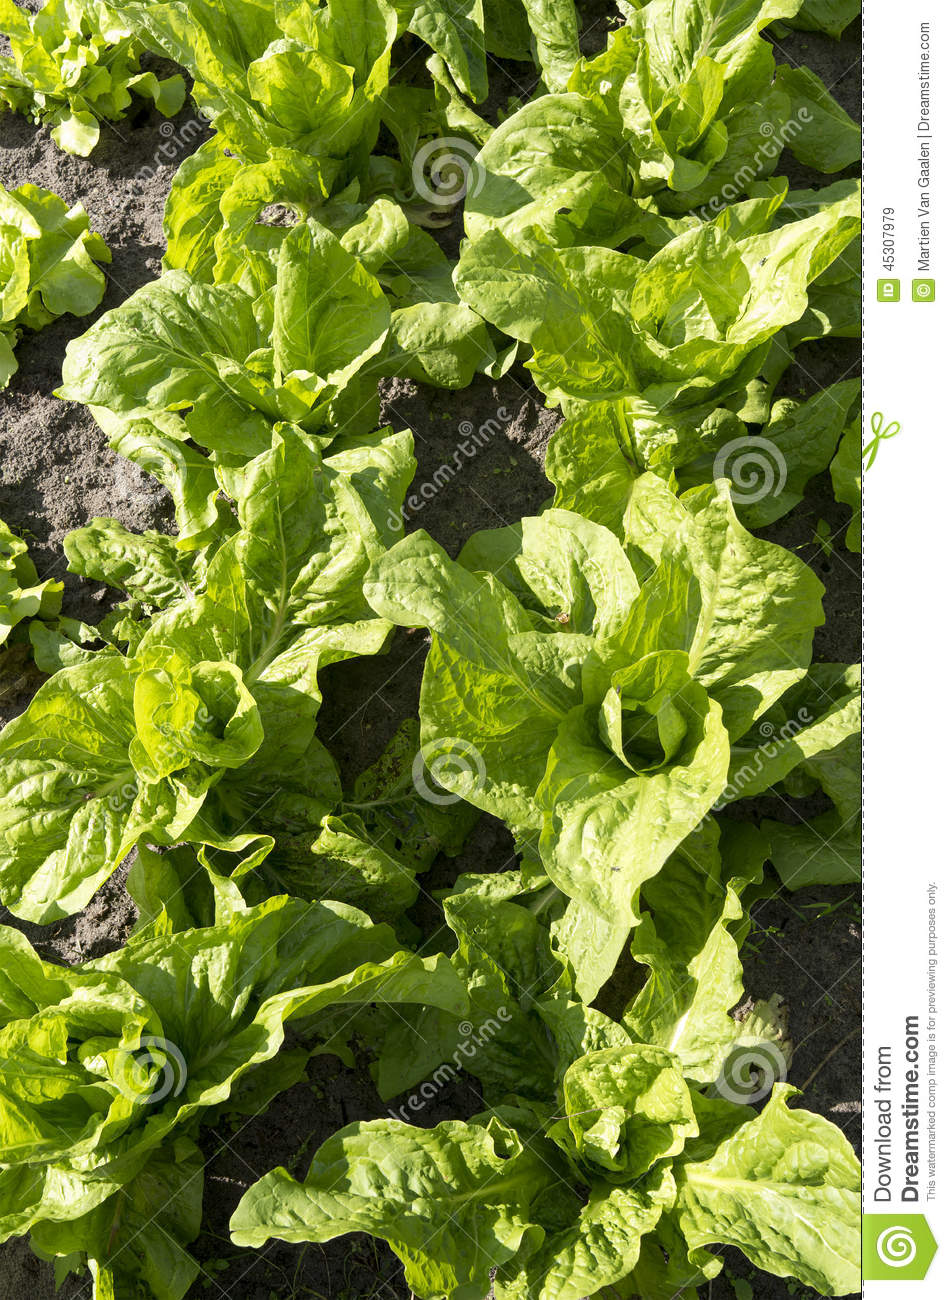 Green chicory plants stock photo image 45307979 for Dream plants for the natural garden